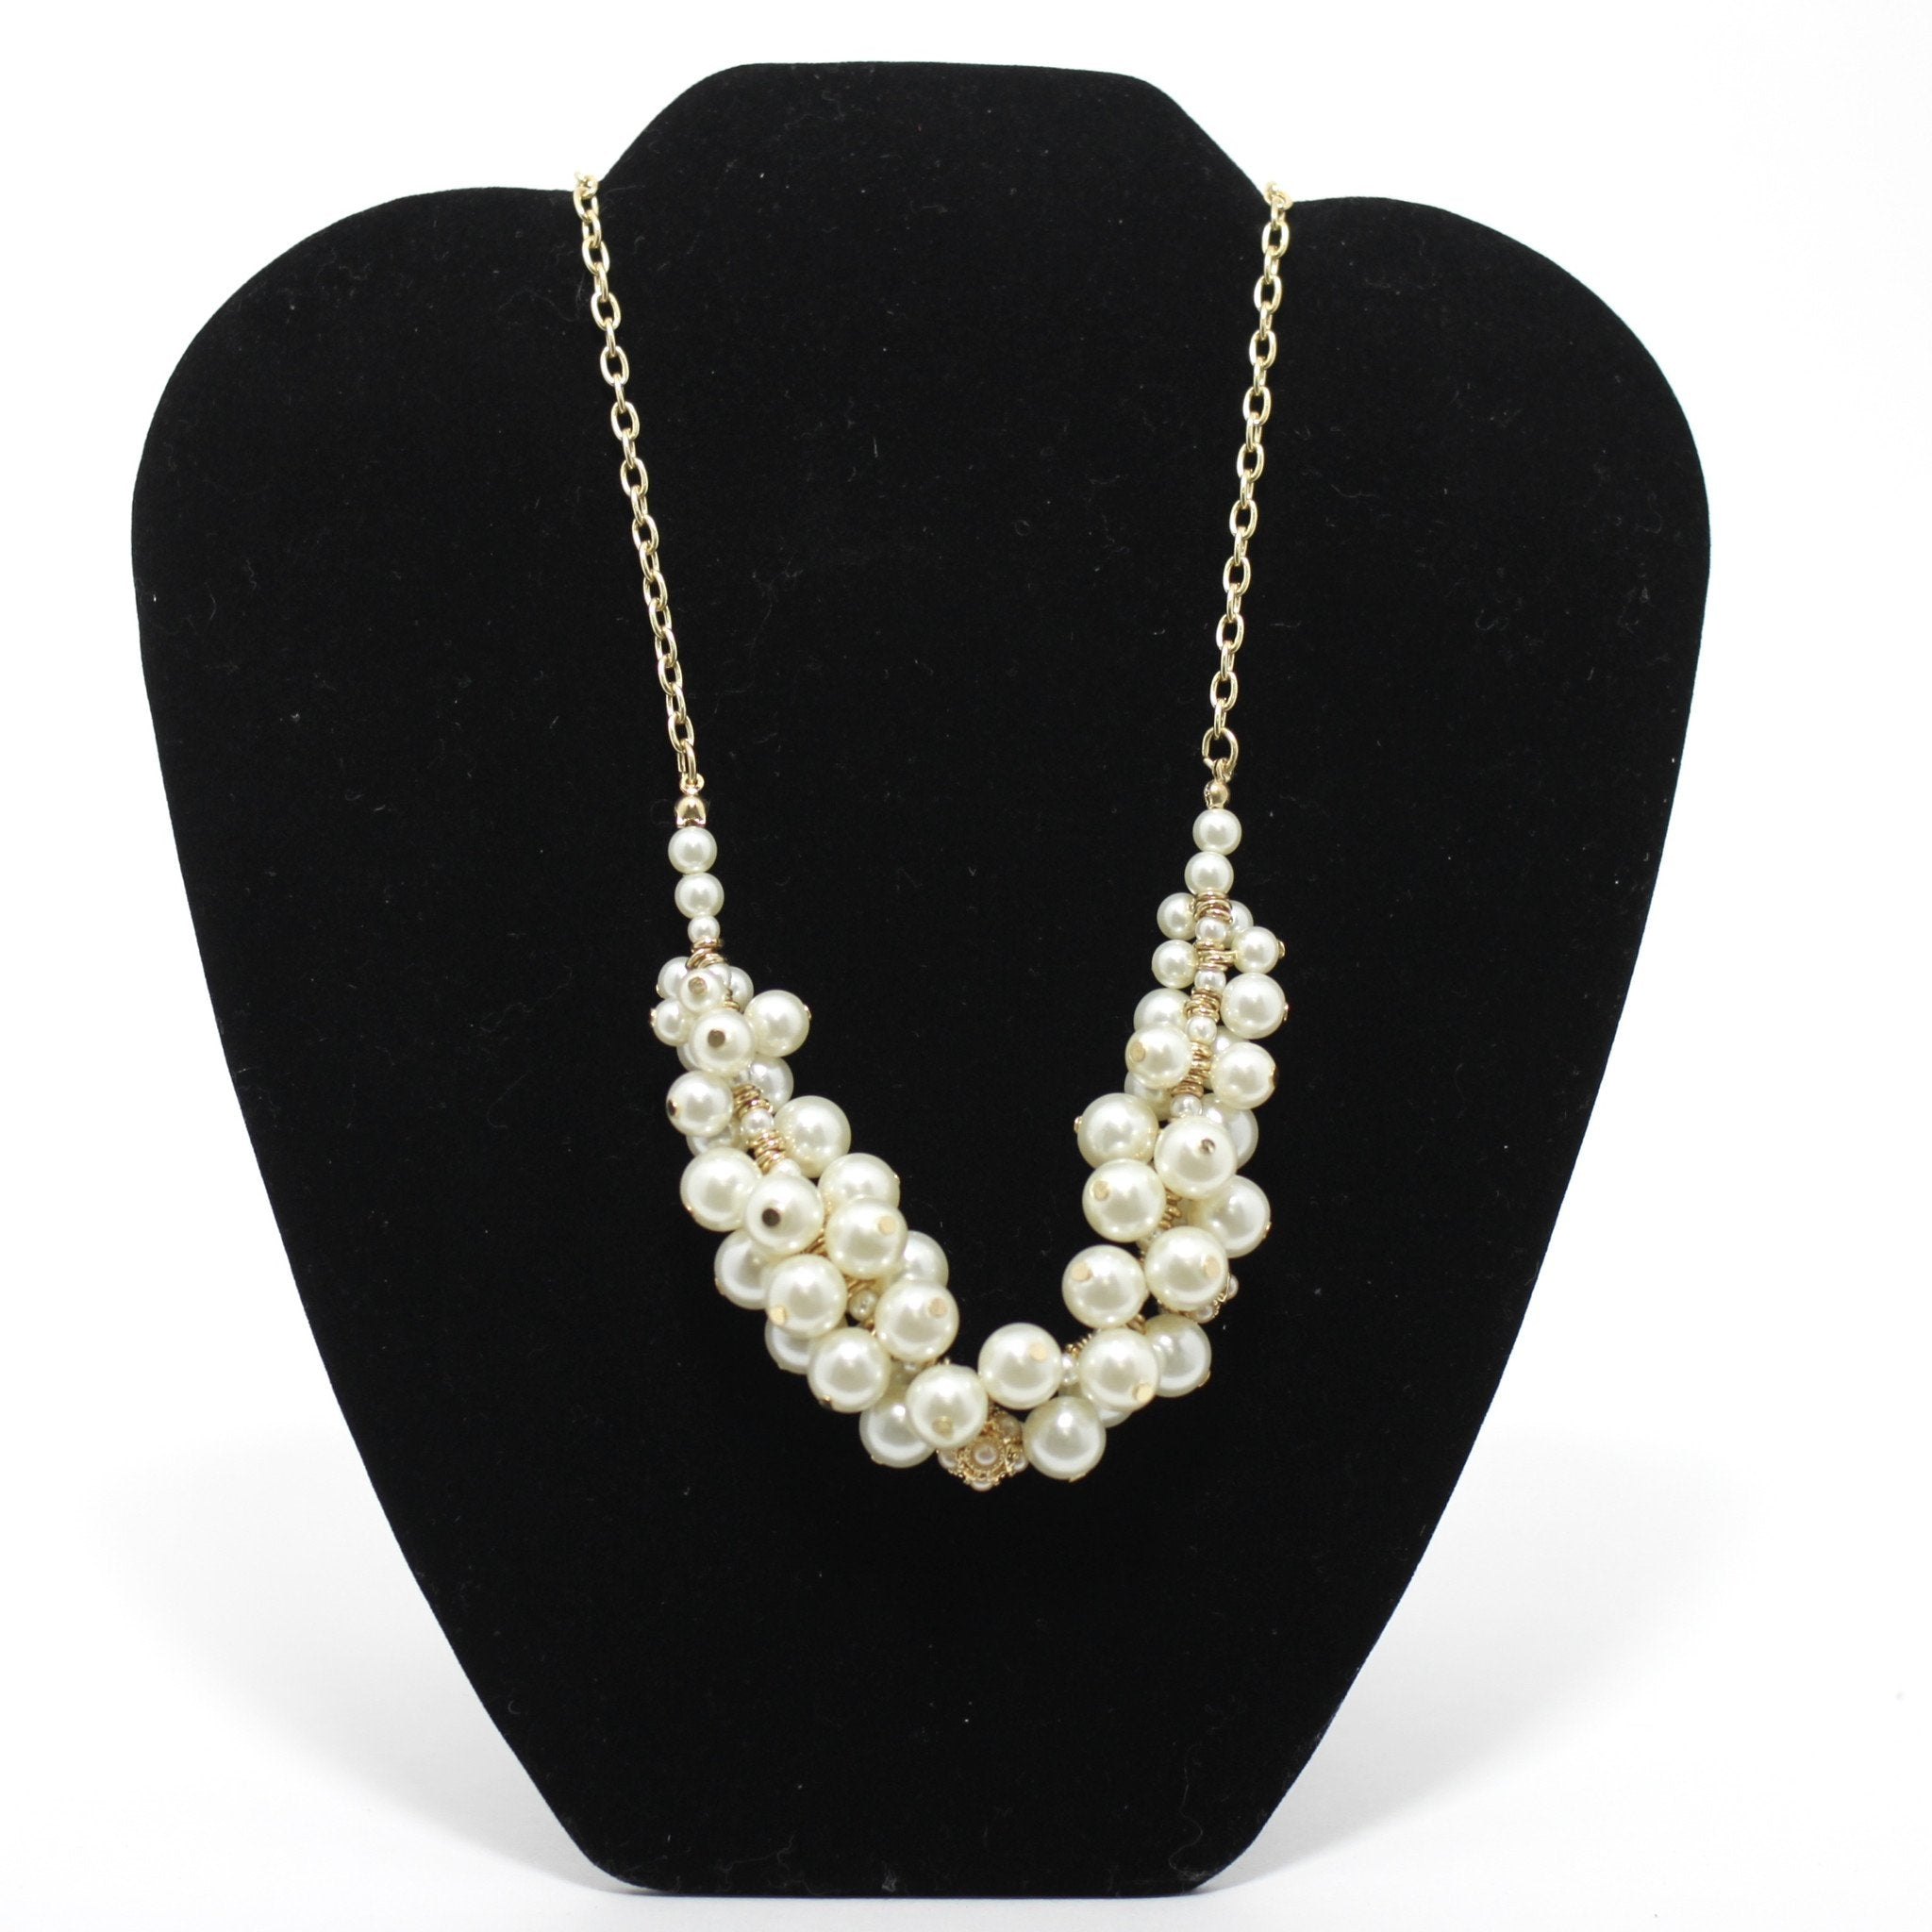 White Pearl & Gold Necklace - Donated From The Designer - The Fashion Foundation